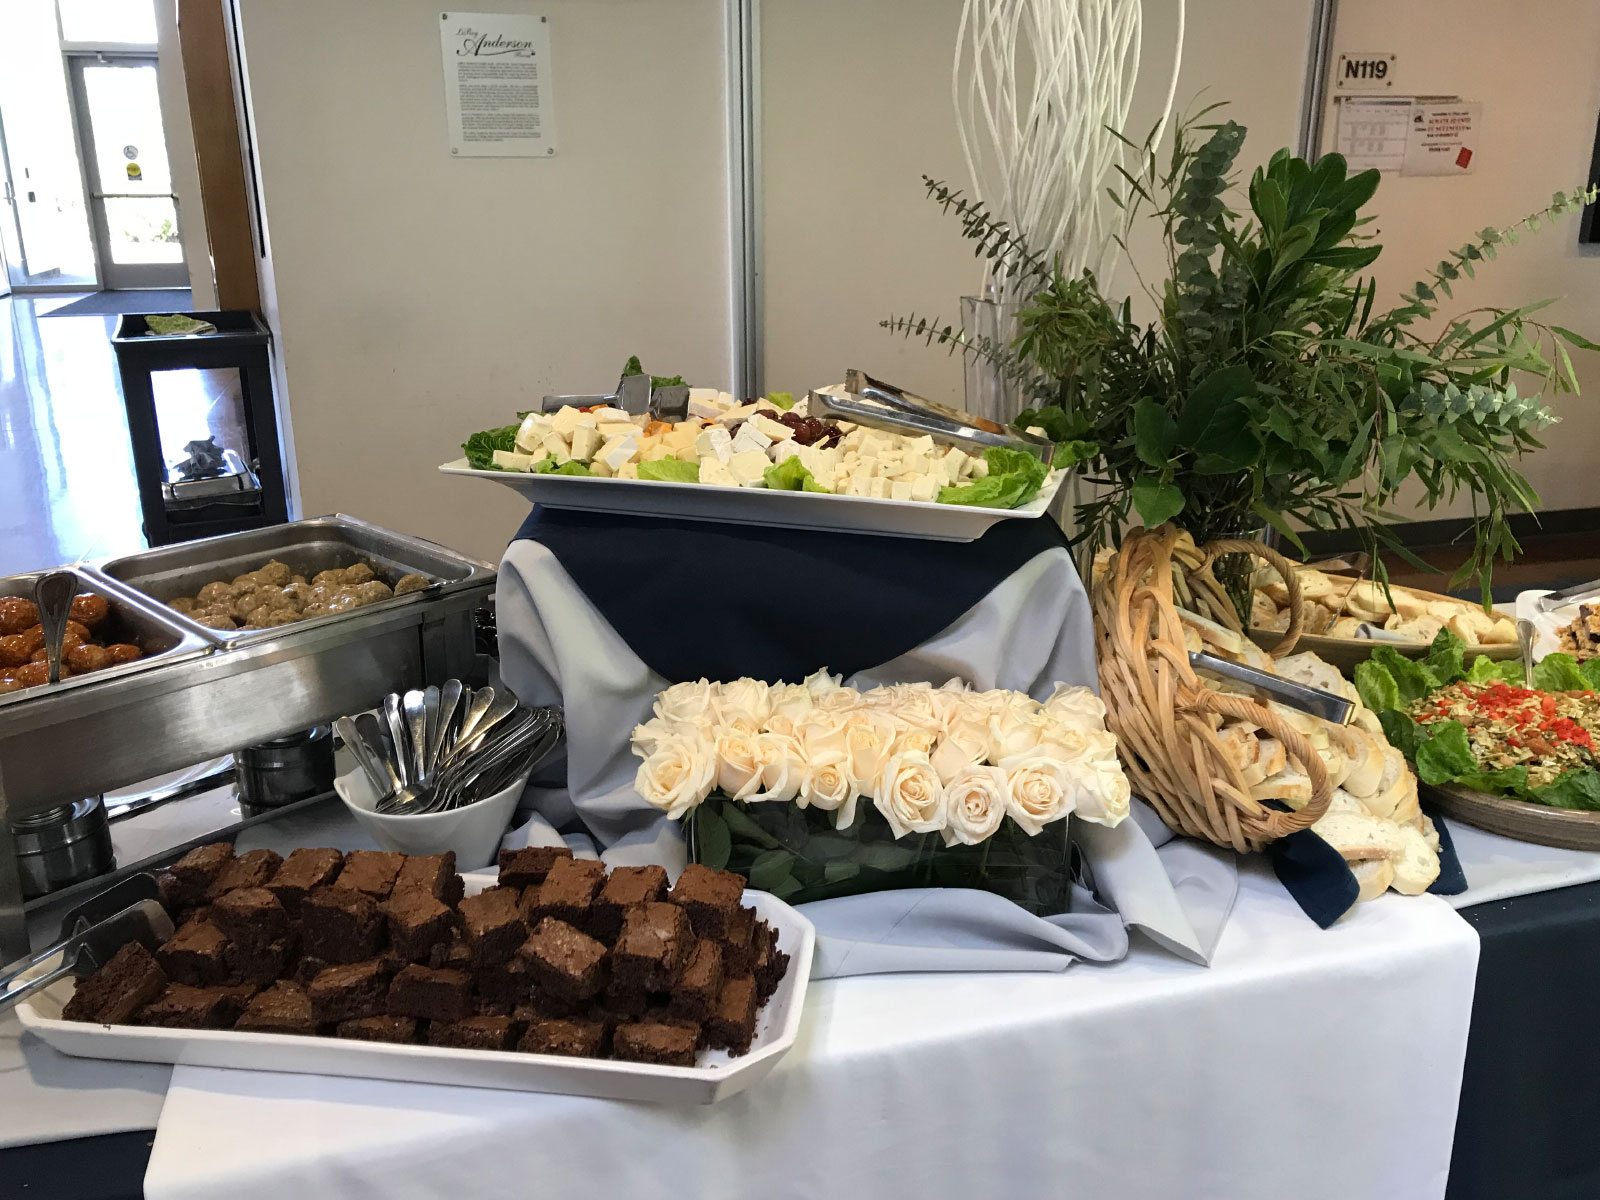 Catered food of dip, brownies, meat balls and deviled eggs at the Oregon City campus